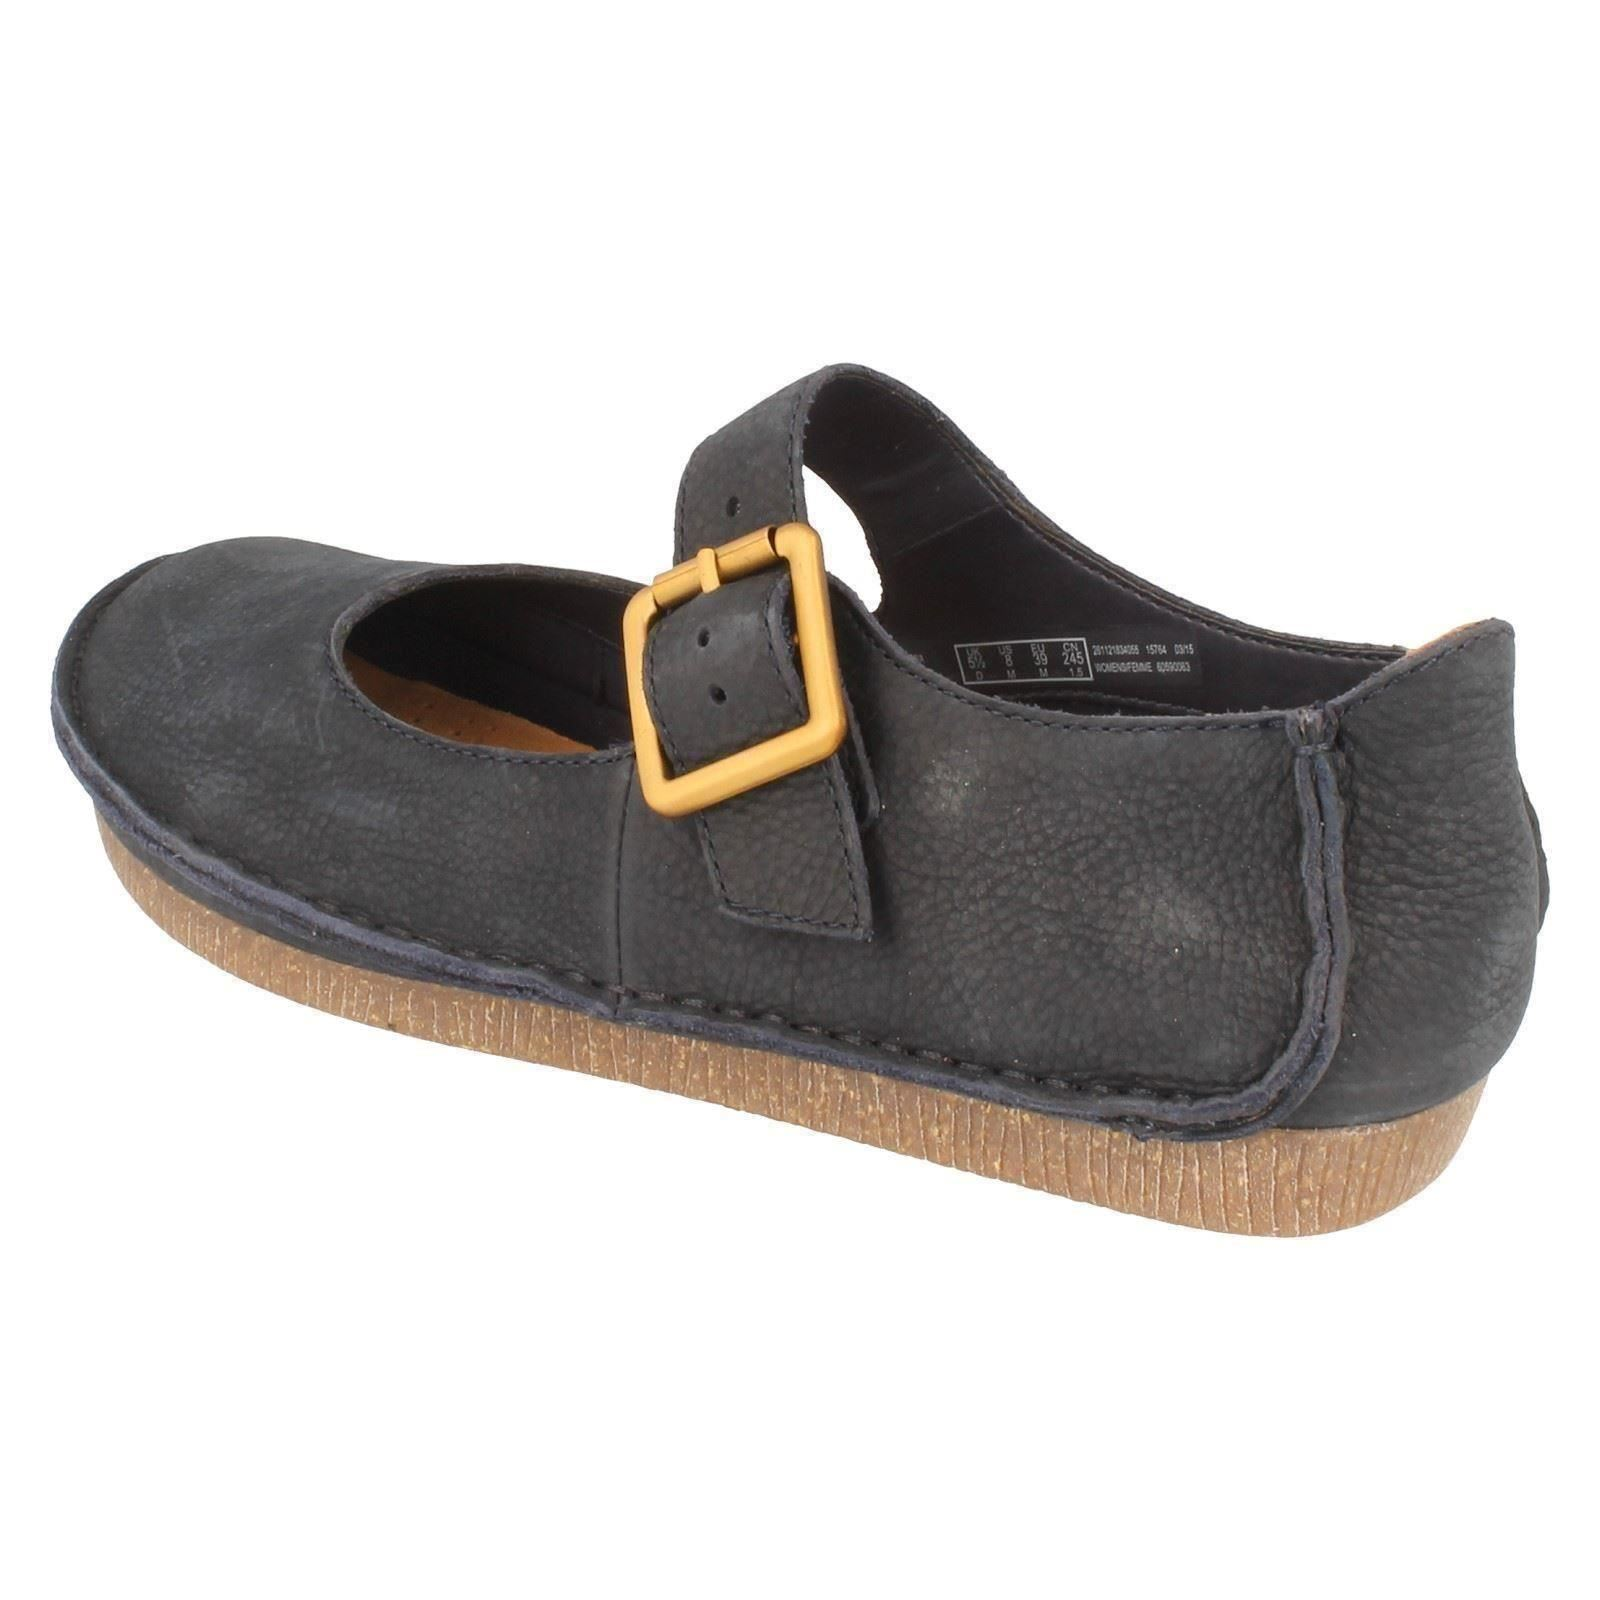 Clarks Active Air Mary Jane Shoes